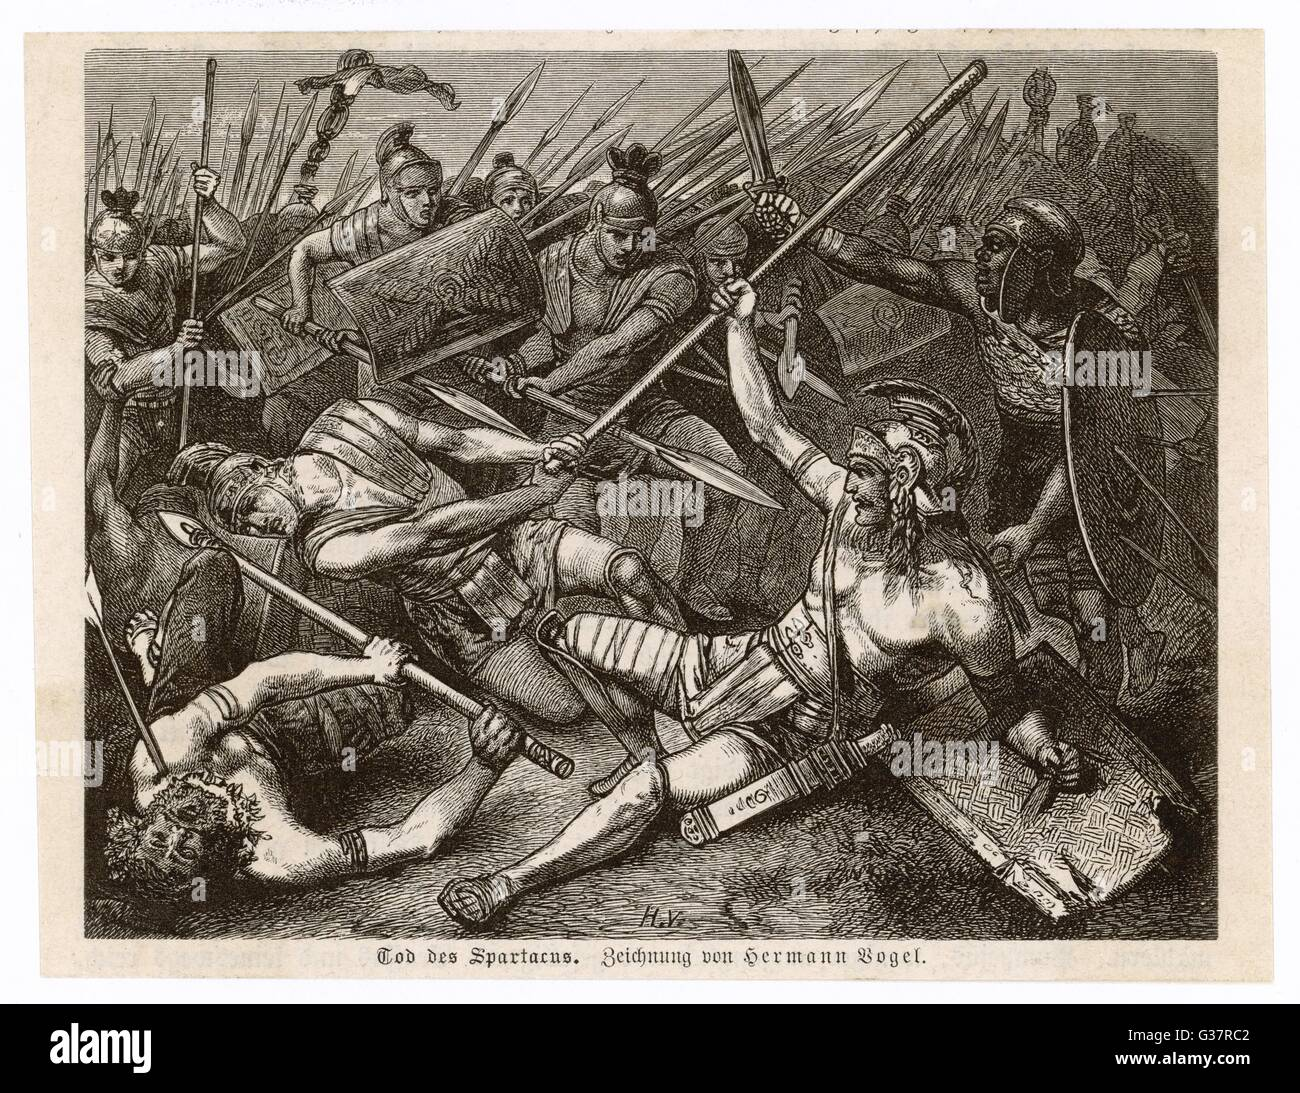 SLAVE REVOLT In the final battle Crassus  defeats the slaves and  Spartacus is killed on the  battlefield      Date: - Stock Image